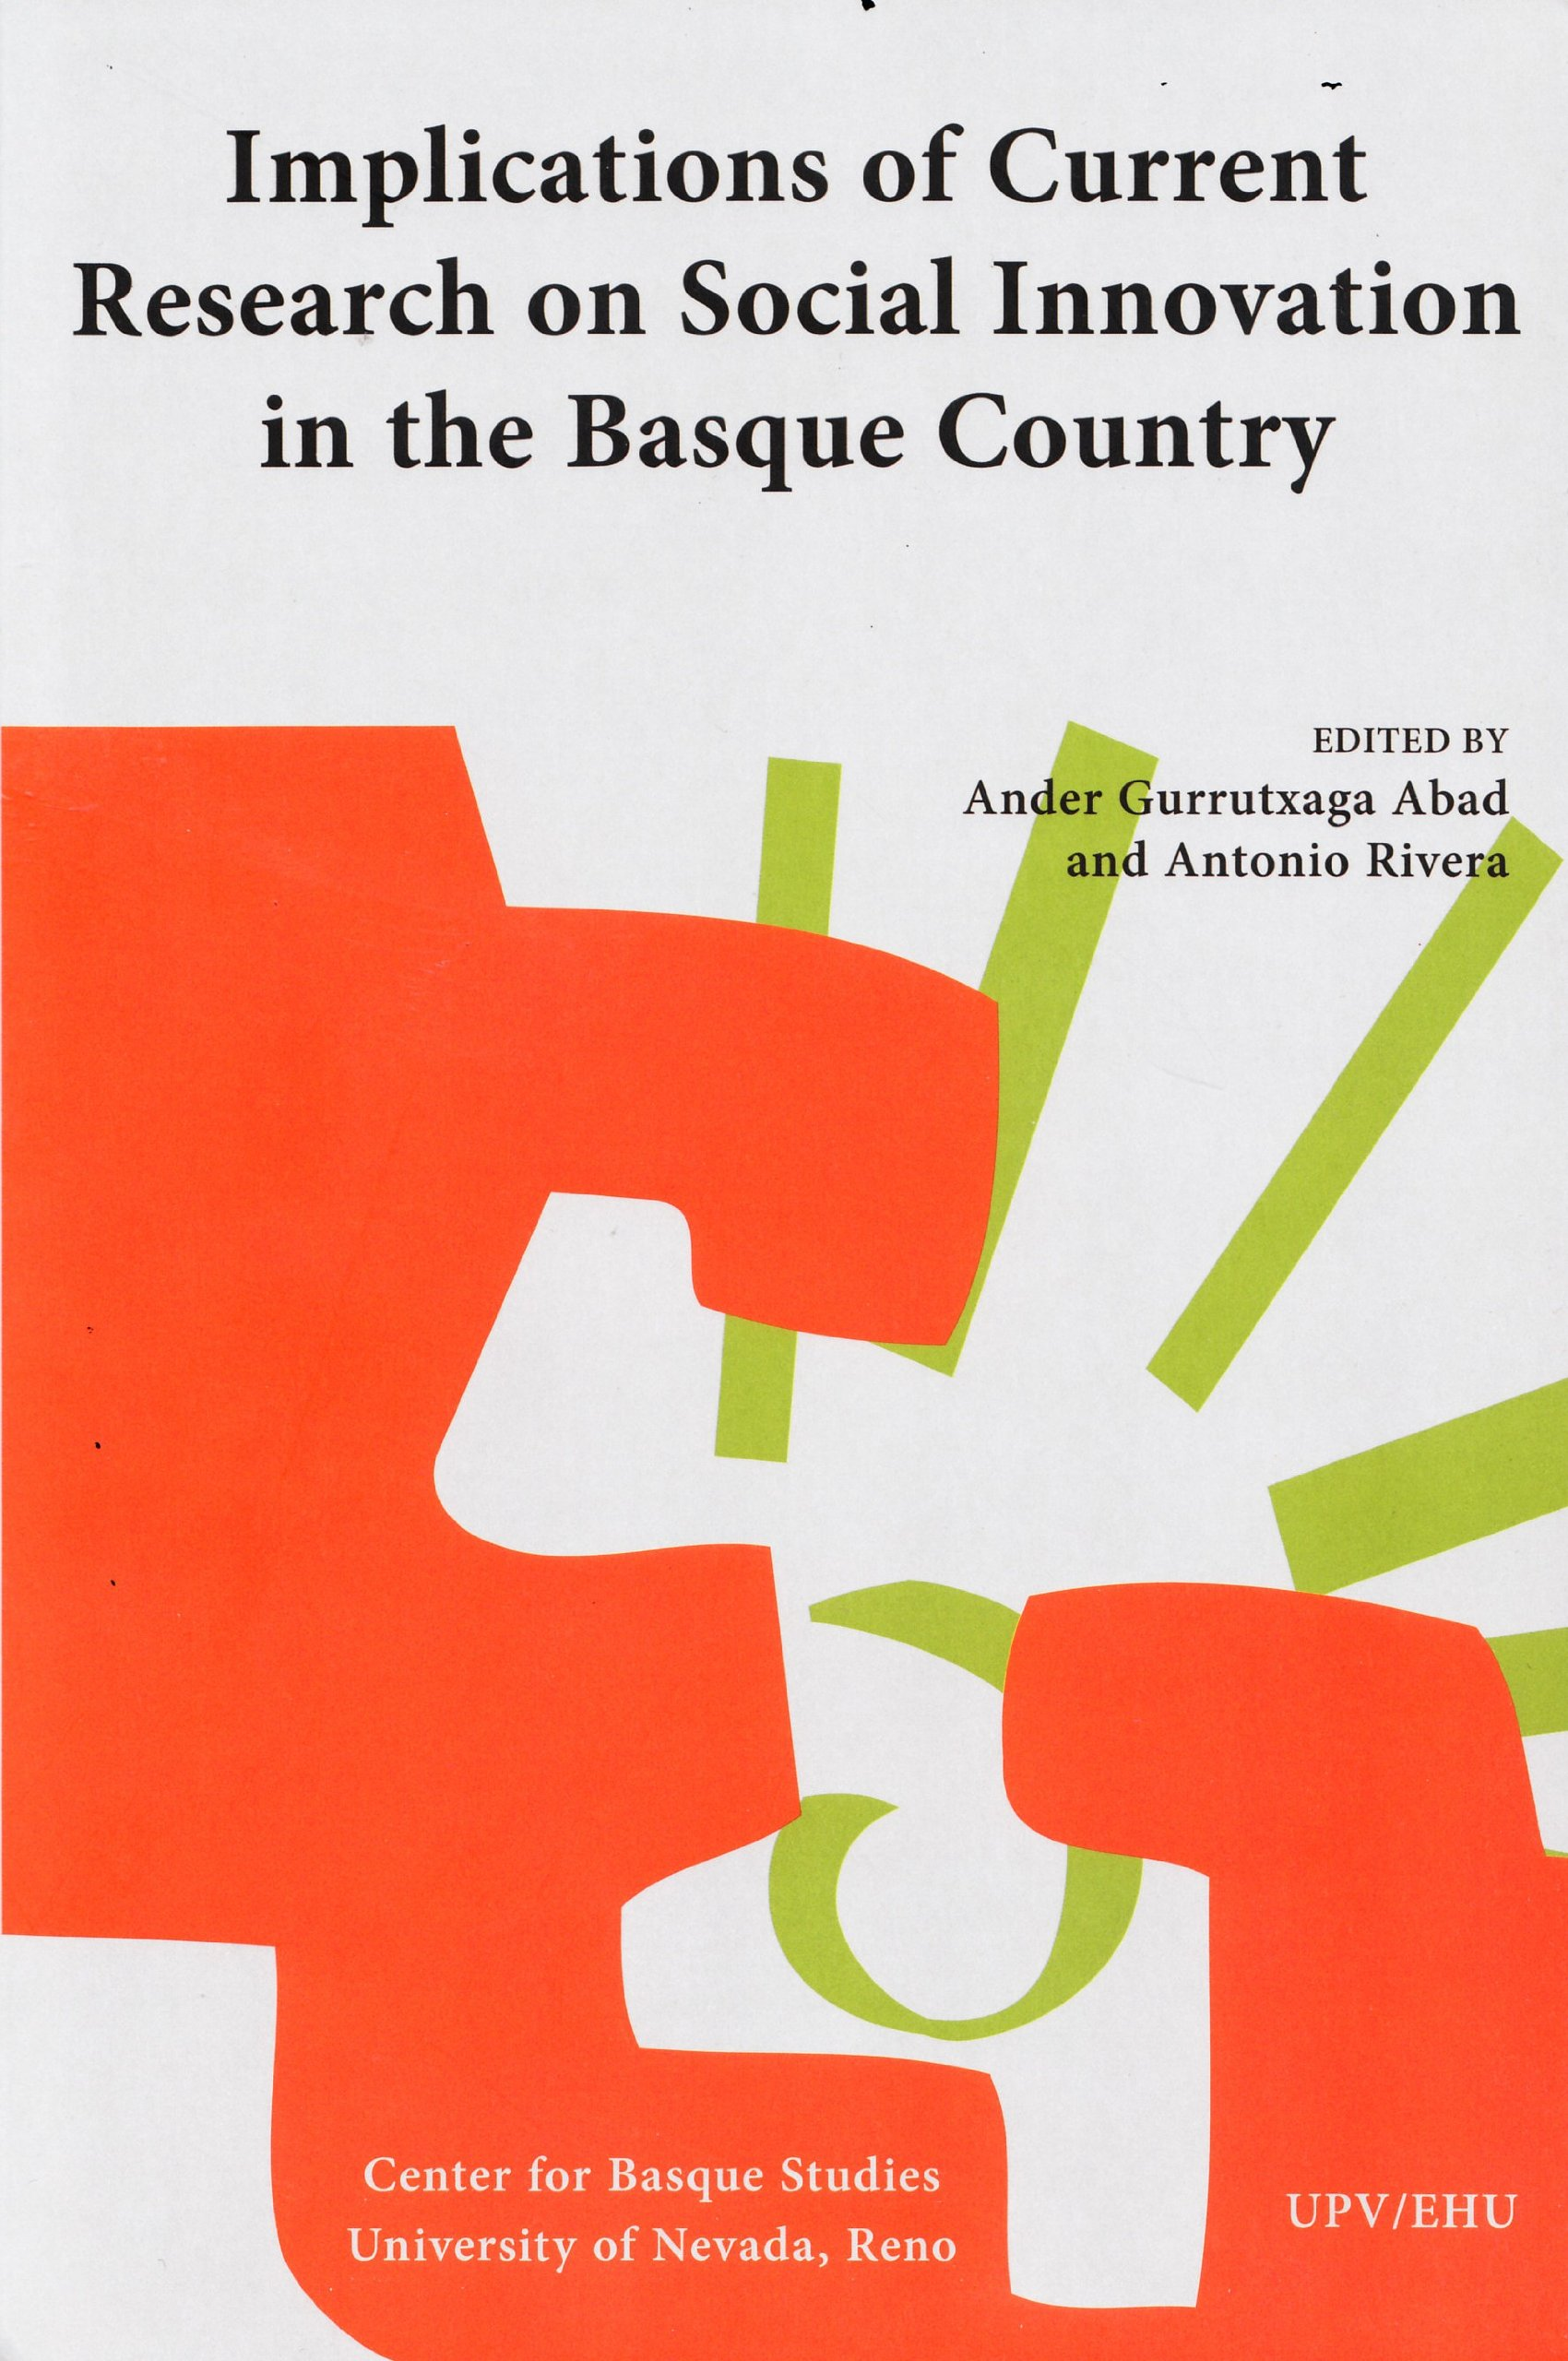 Implications of Current Research on Social Innovation in the Basque Country (Current Research Series, No. 4)